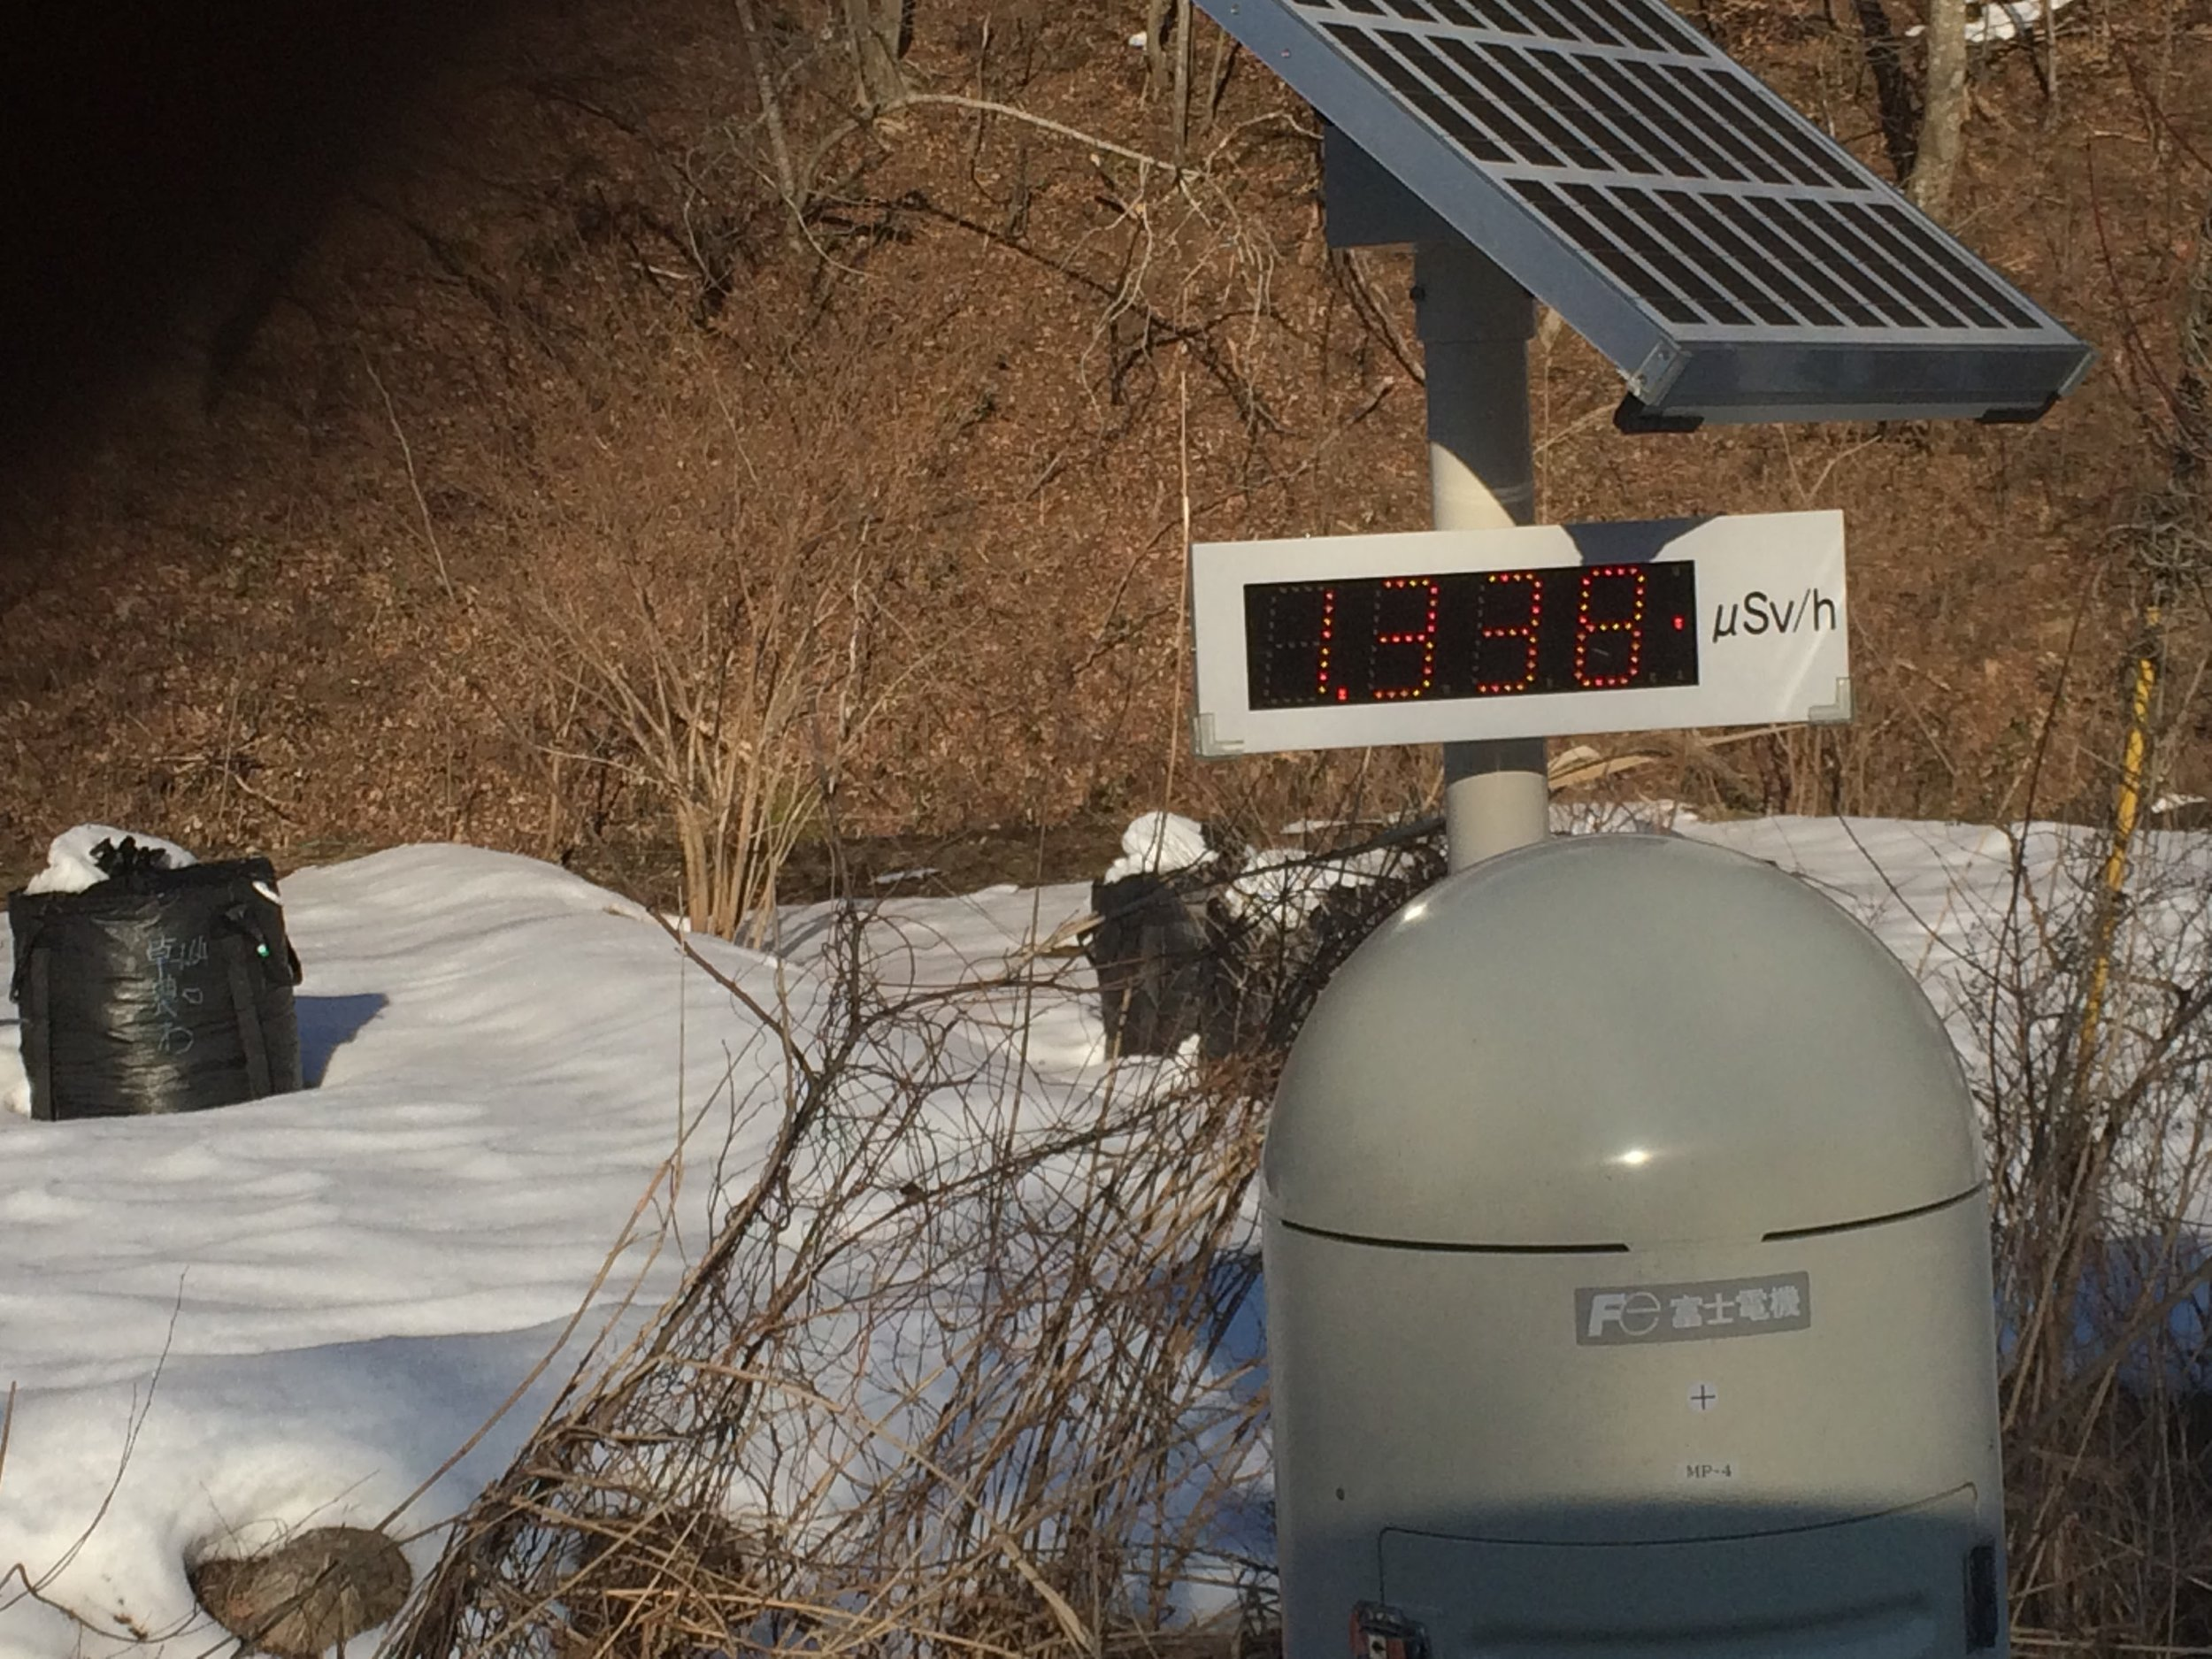 One of many solar powered radiation detectors on the side of the road. Normal background radiation is 10x lower.